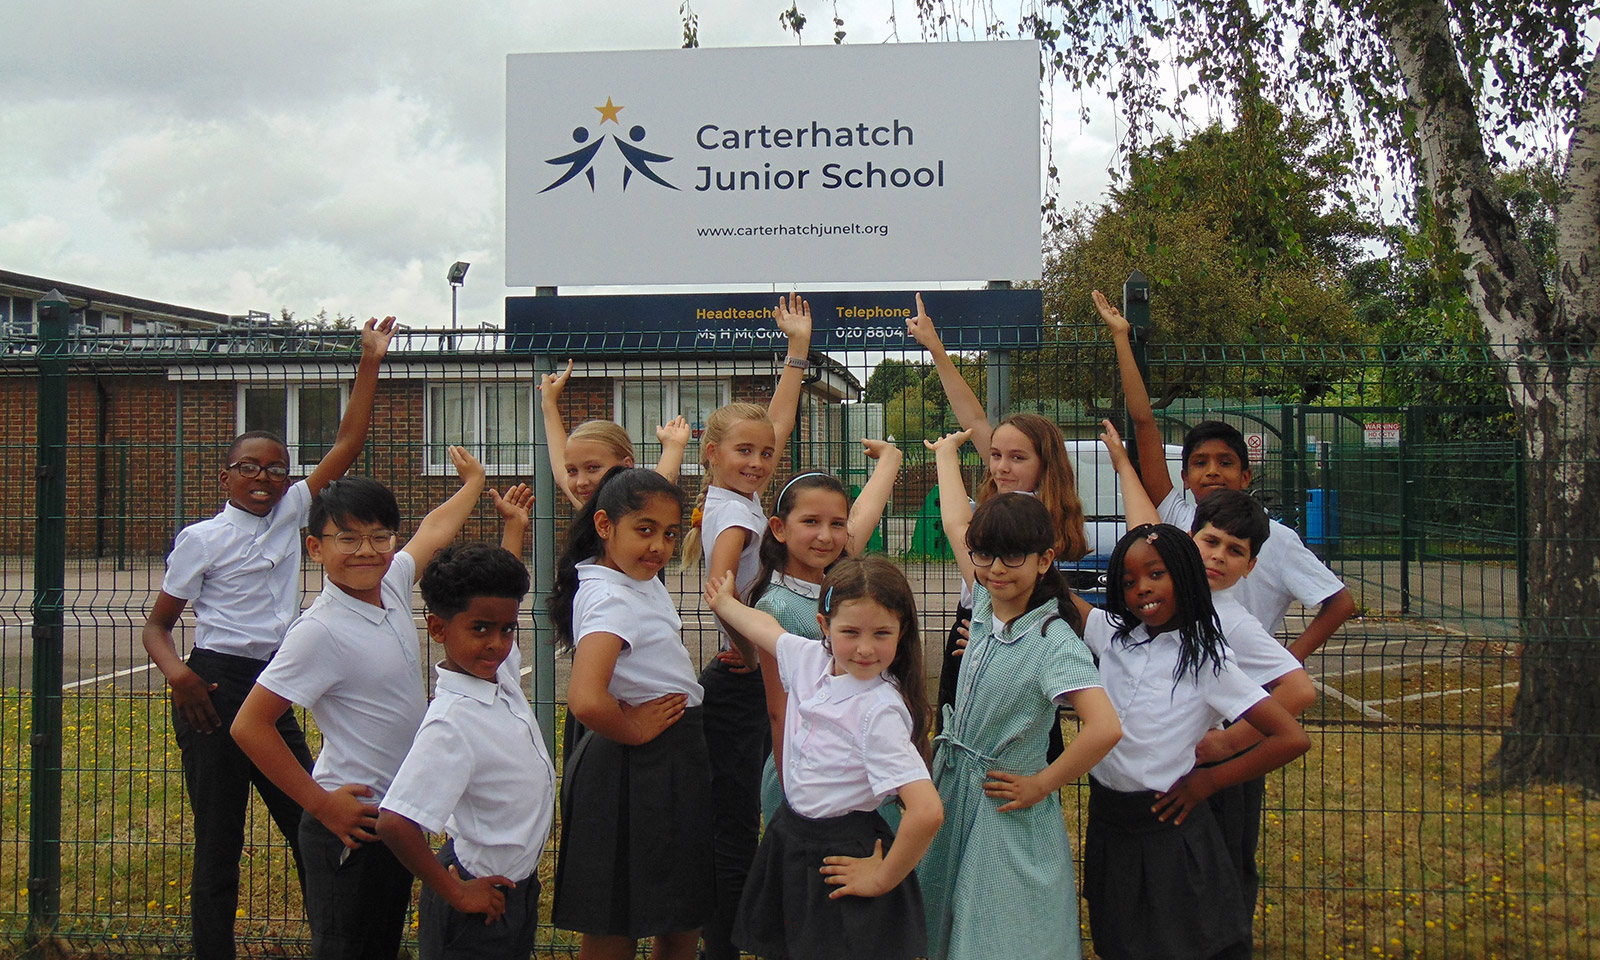 Carterhatch Junior School - exterior signage